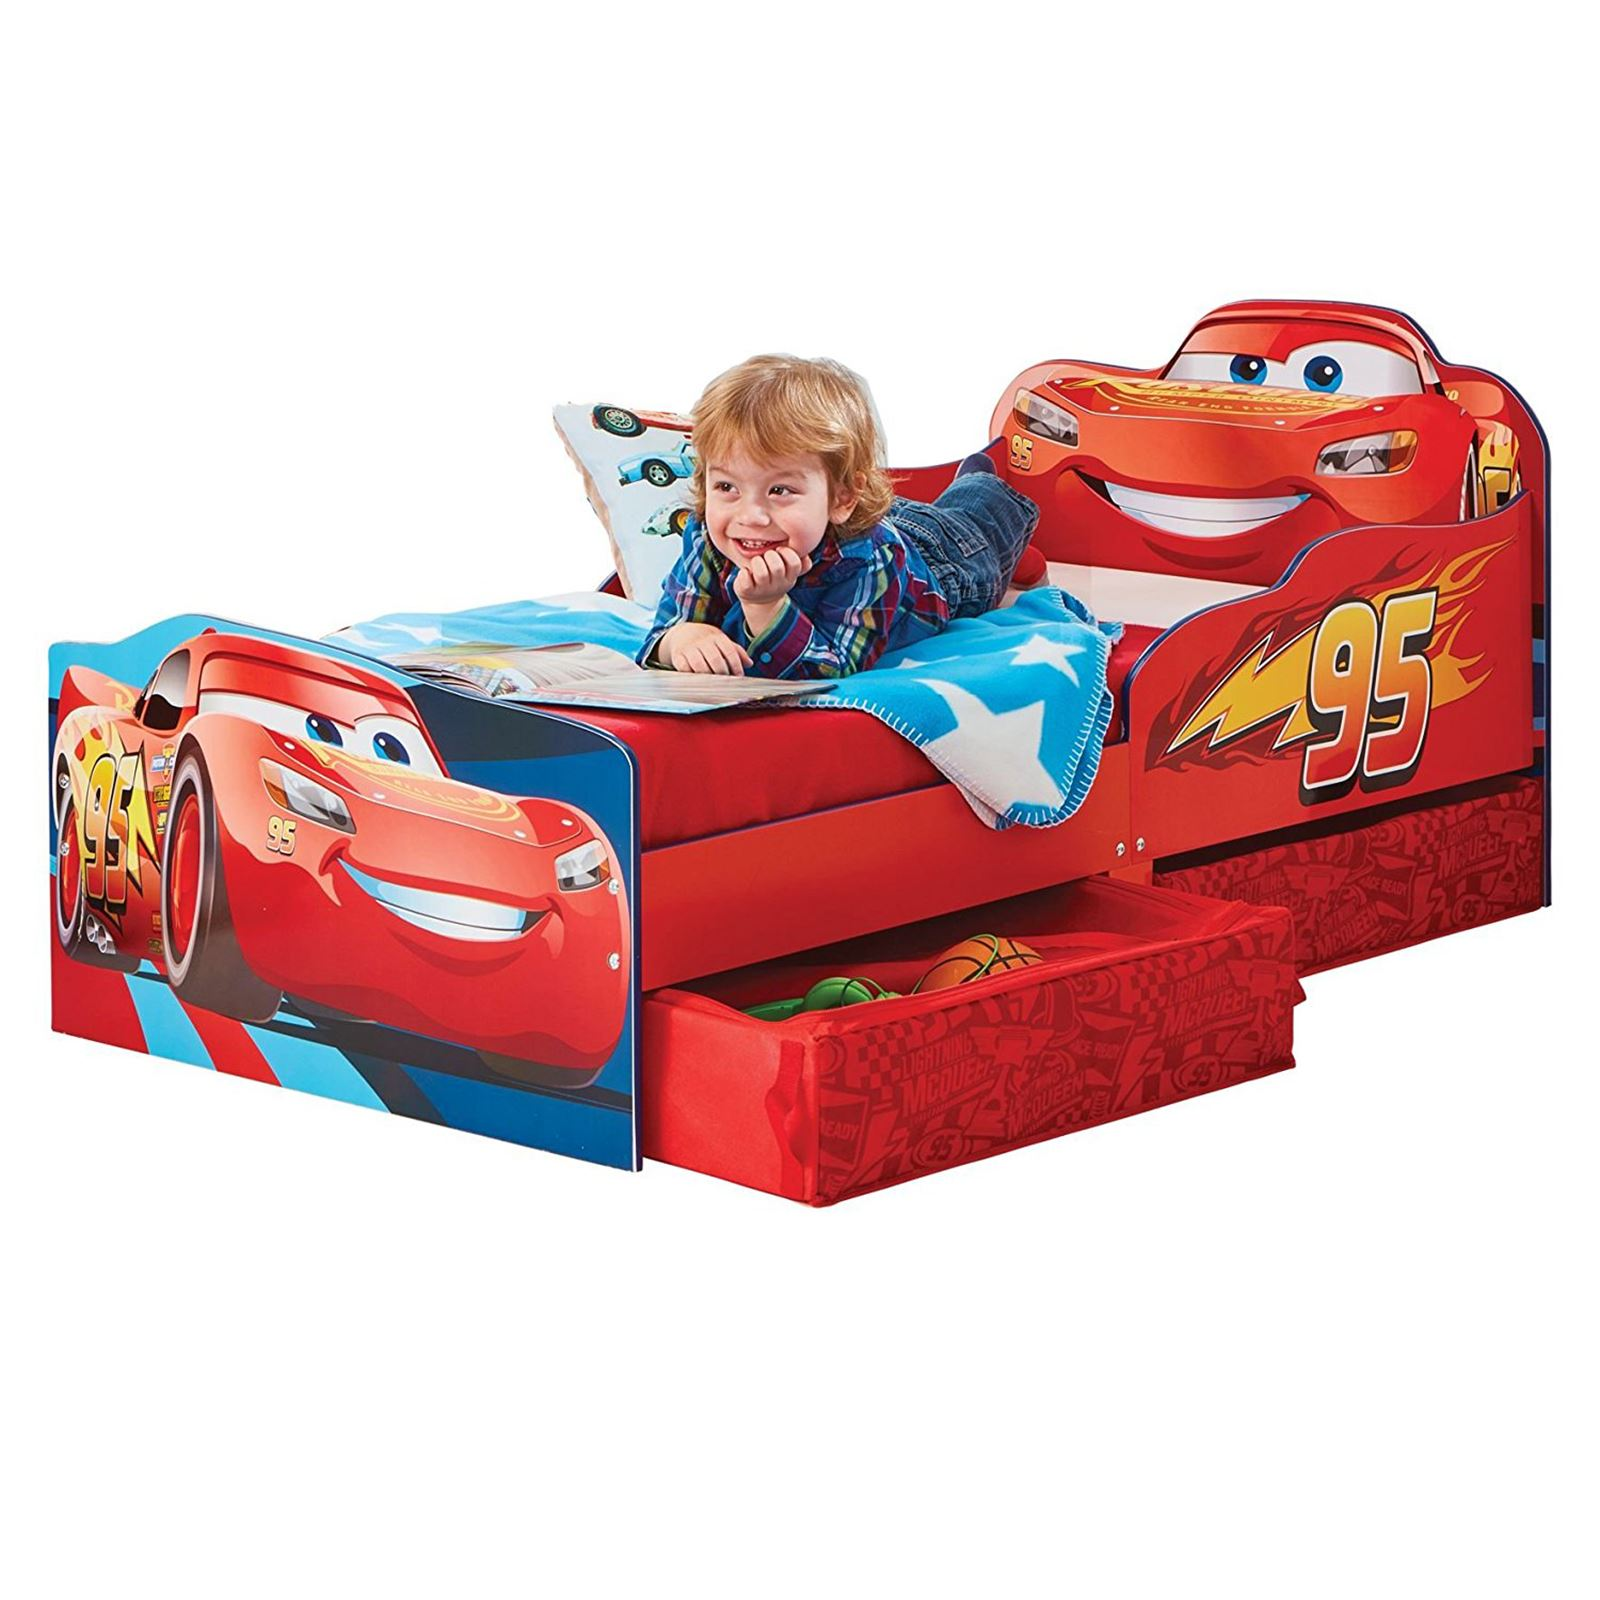 DISNEY CARS LIGHTNING MCQUEEN RED TODDLER BED WITH 2 DRAWERS FOAM MATTRESS